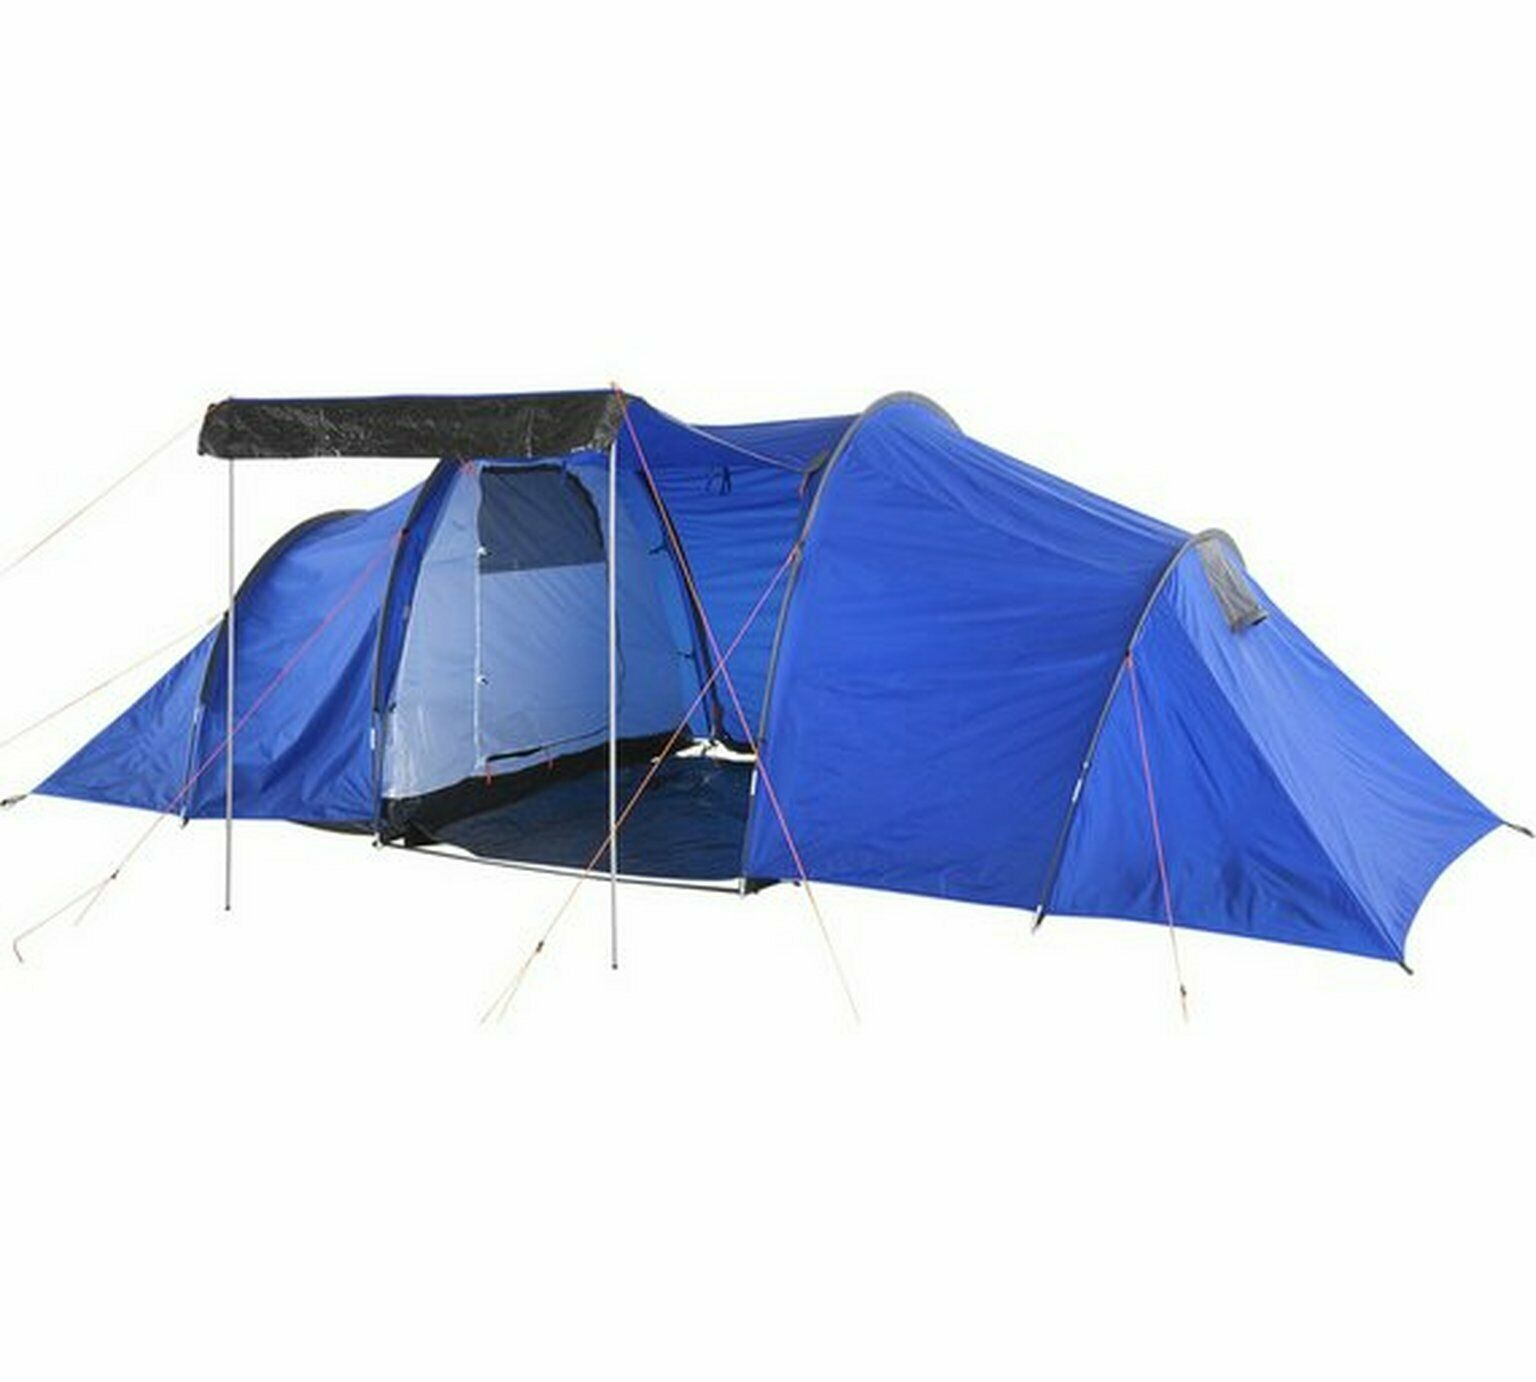 ProAction 6 Man 2 Room Tent Separate Rooms For  Privacy And A Central Foyer Area  cheap and high quality